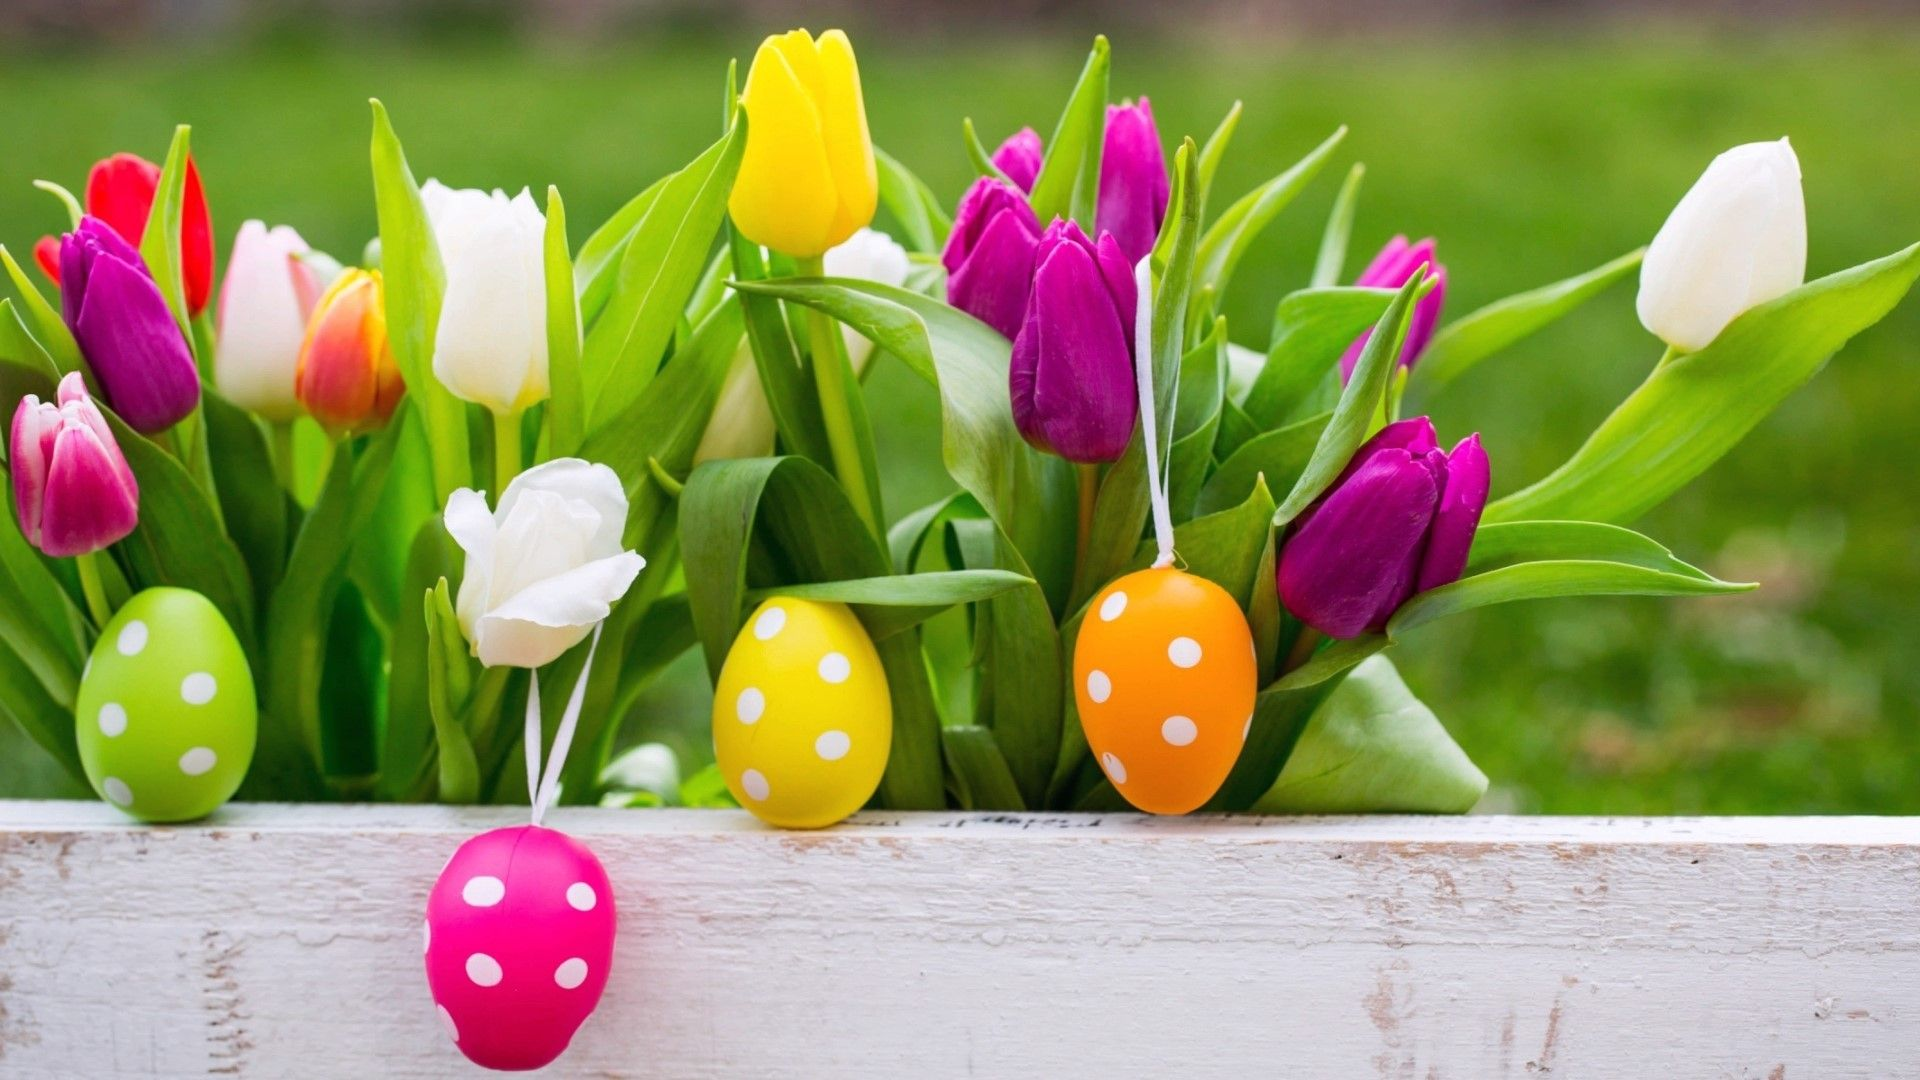 Easter Eggs With Beautiful Background Easter wallpaper